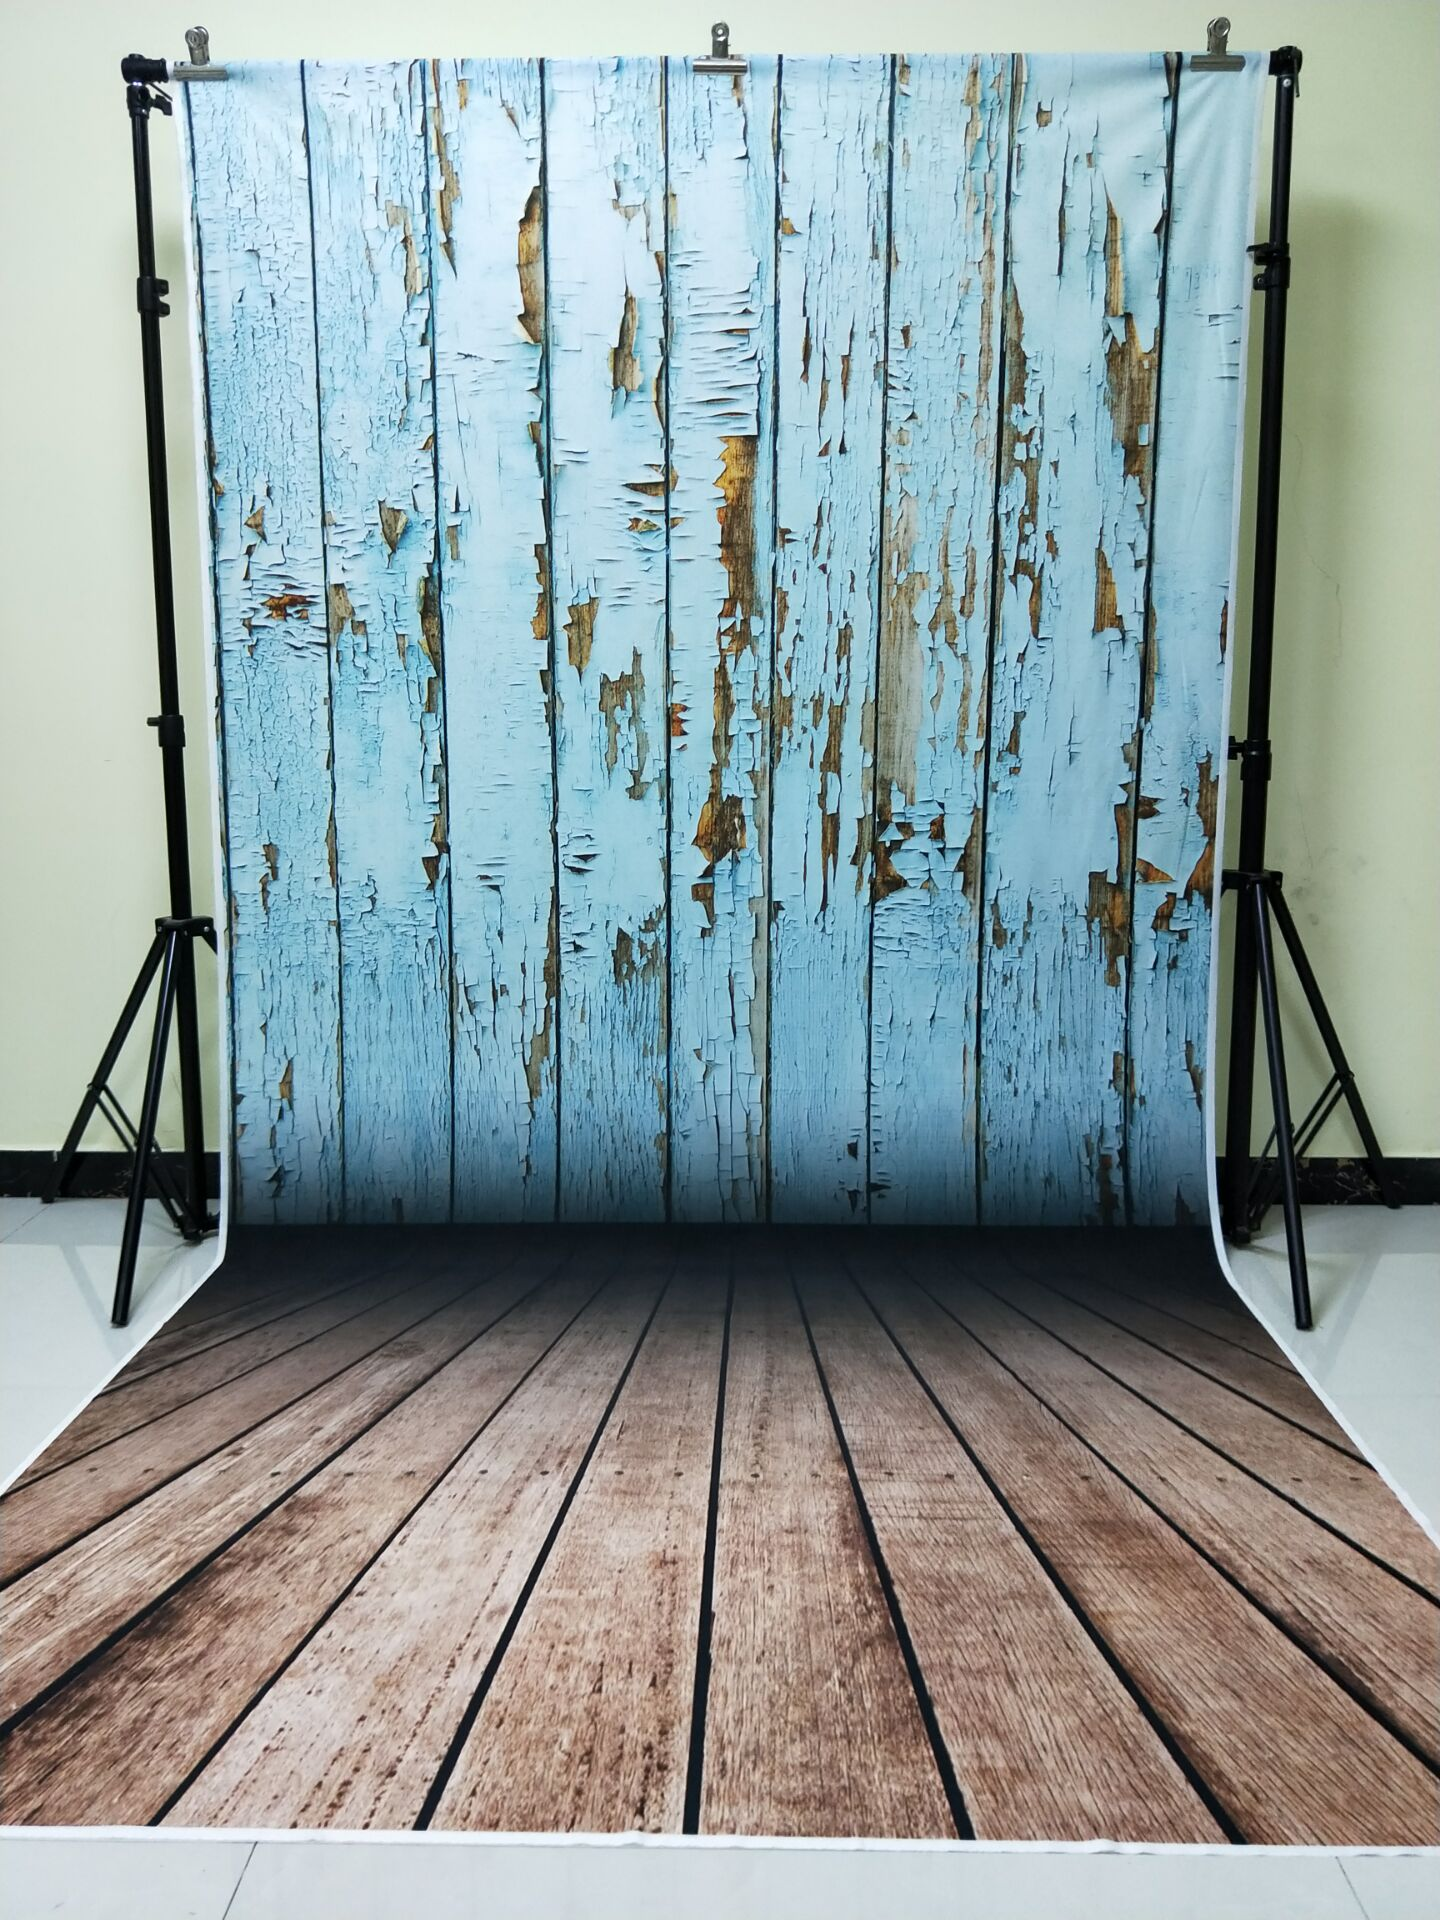 HUAYI 5x10ft Cotton Polyester Blue Wood Floor Photography Backdrop Washable Photo Studios Baby Props Background KP-372 huayi 4pc 2x2ft wood floor brick wall backdrop vinyl photography backdrops photo props background small object shooting gy 019